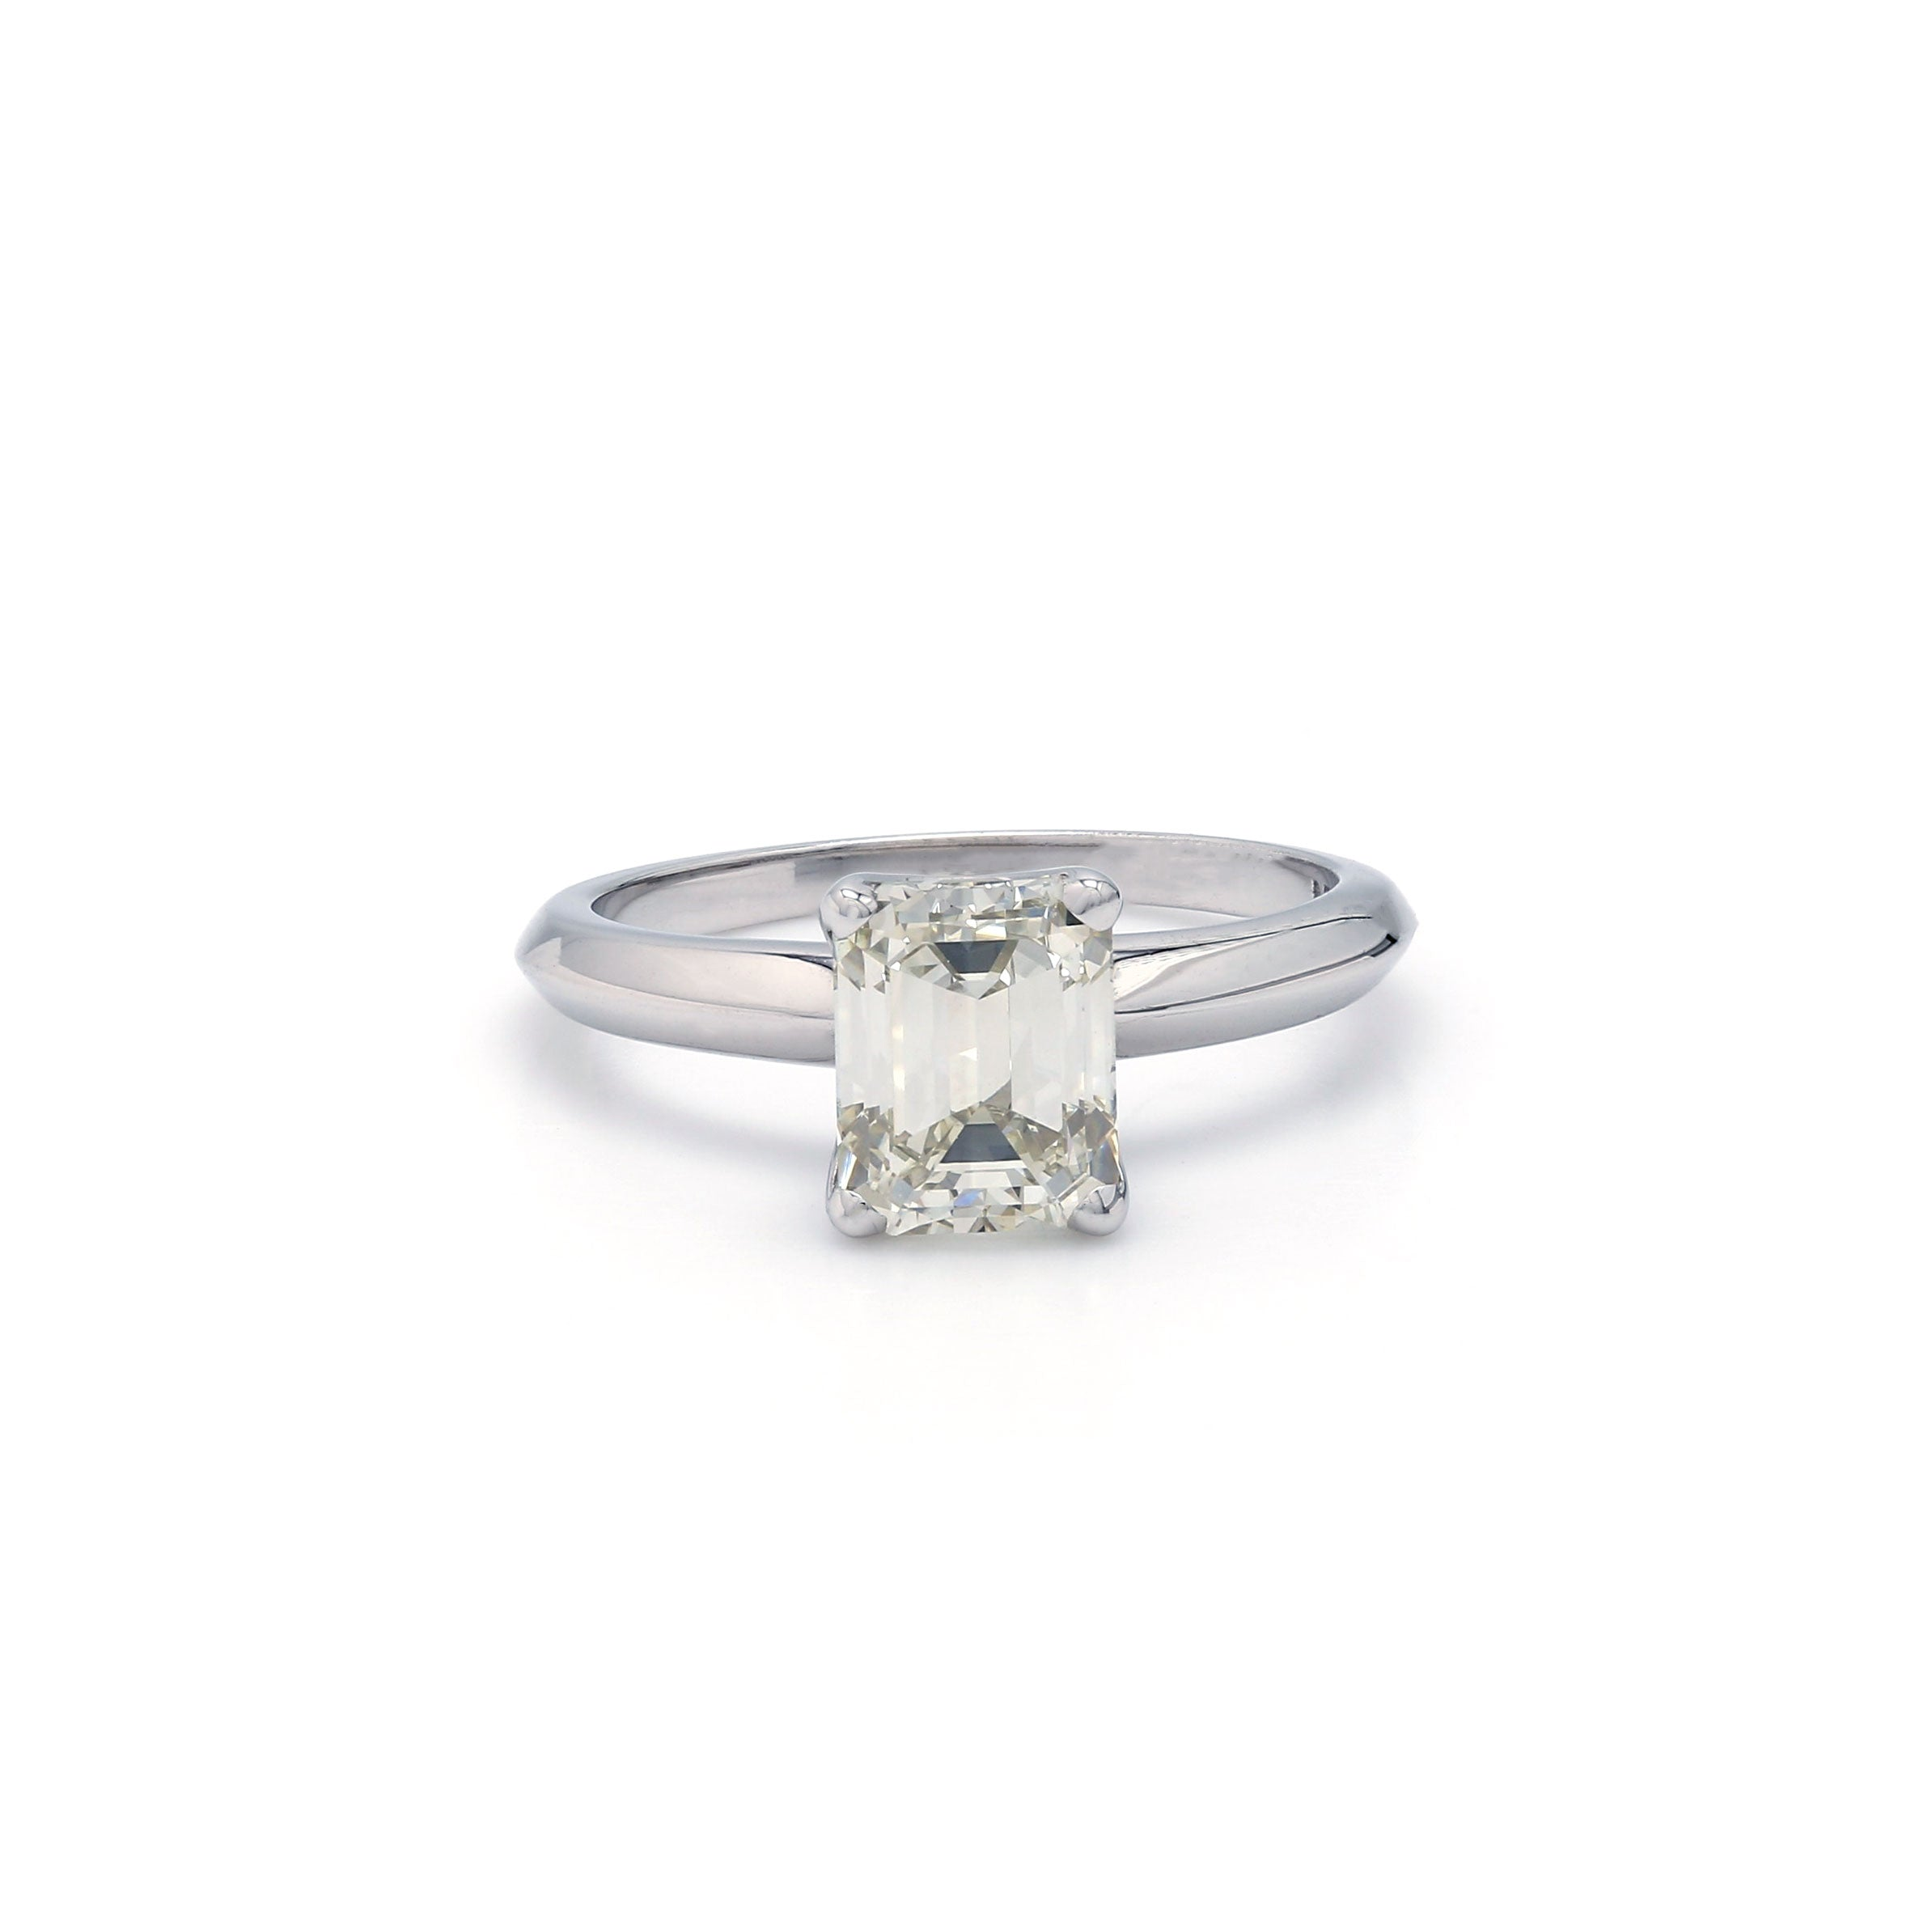 14K White Gold 1.61CT Lab Grown Diamond Emerald Cut Solitaire Ring